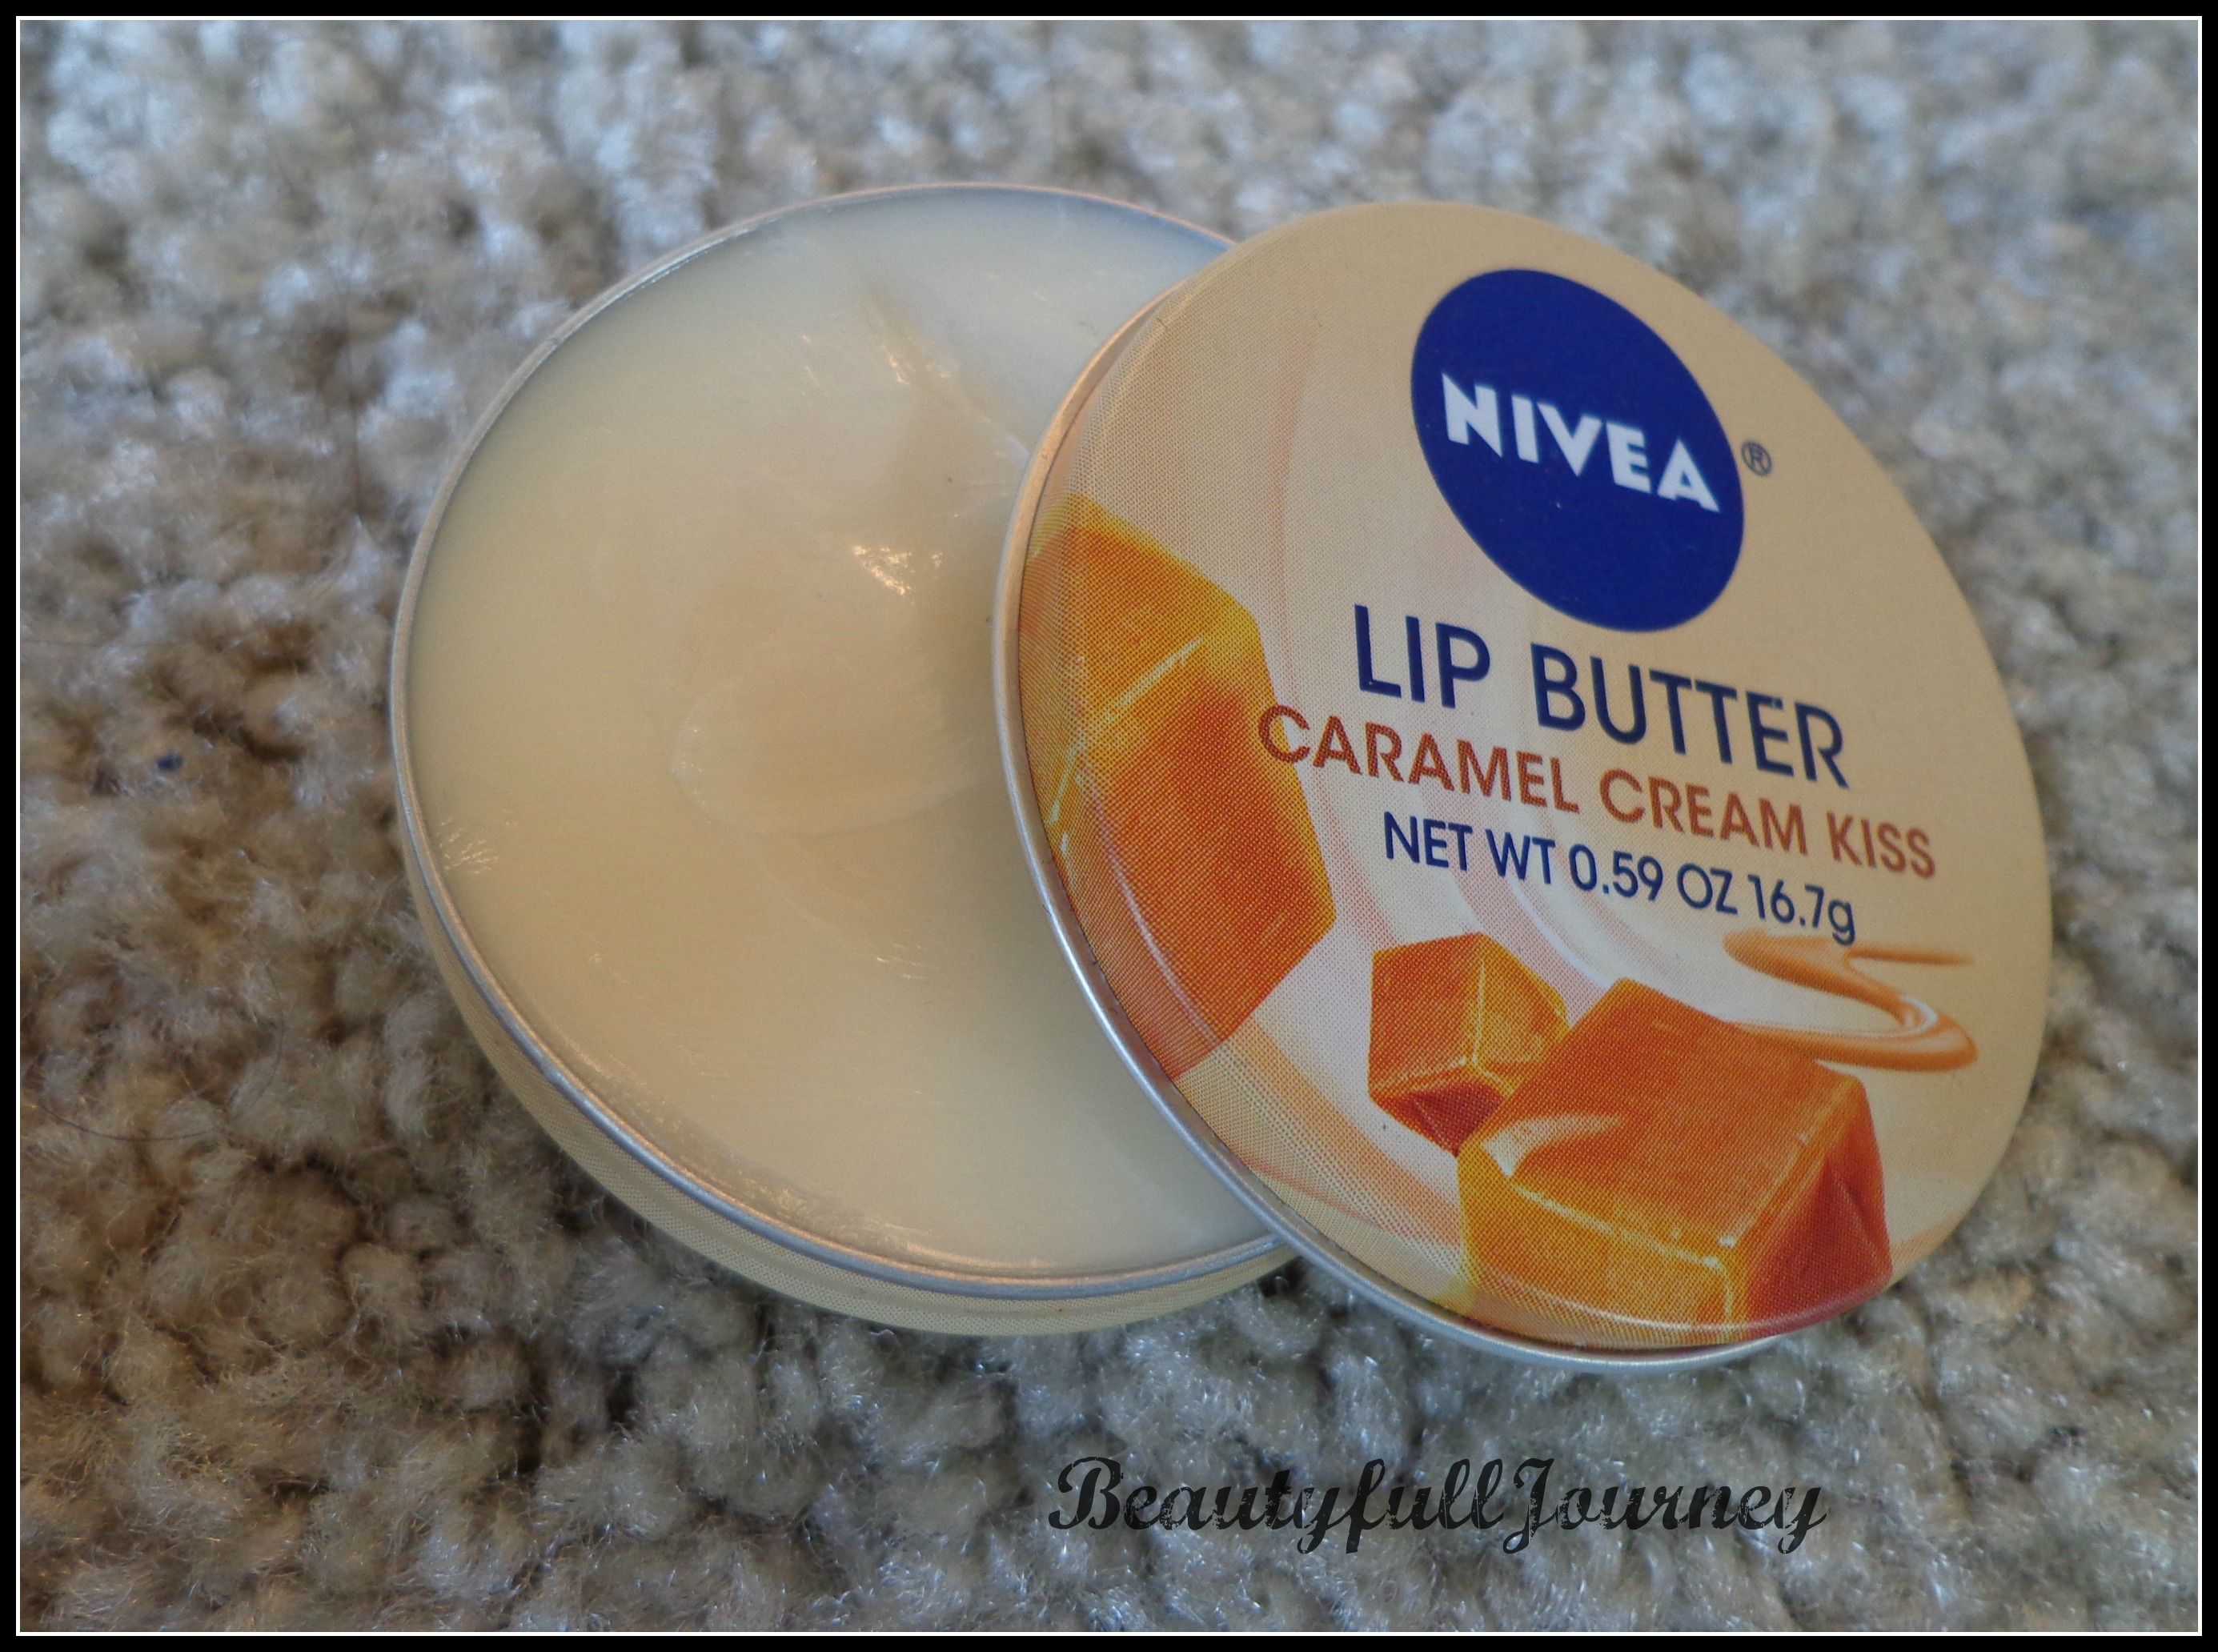 Nivea Lip Butter Caramel Cream Kiss Review Pictures All Things Dsc037011